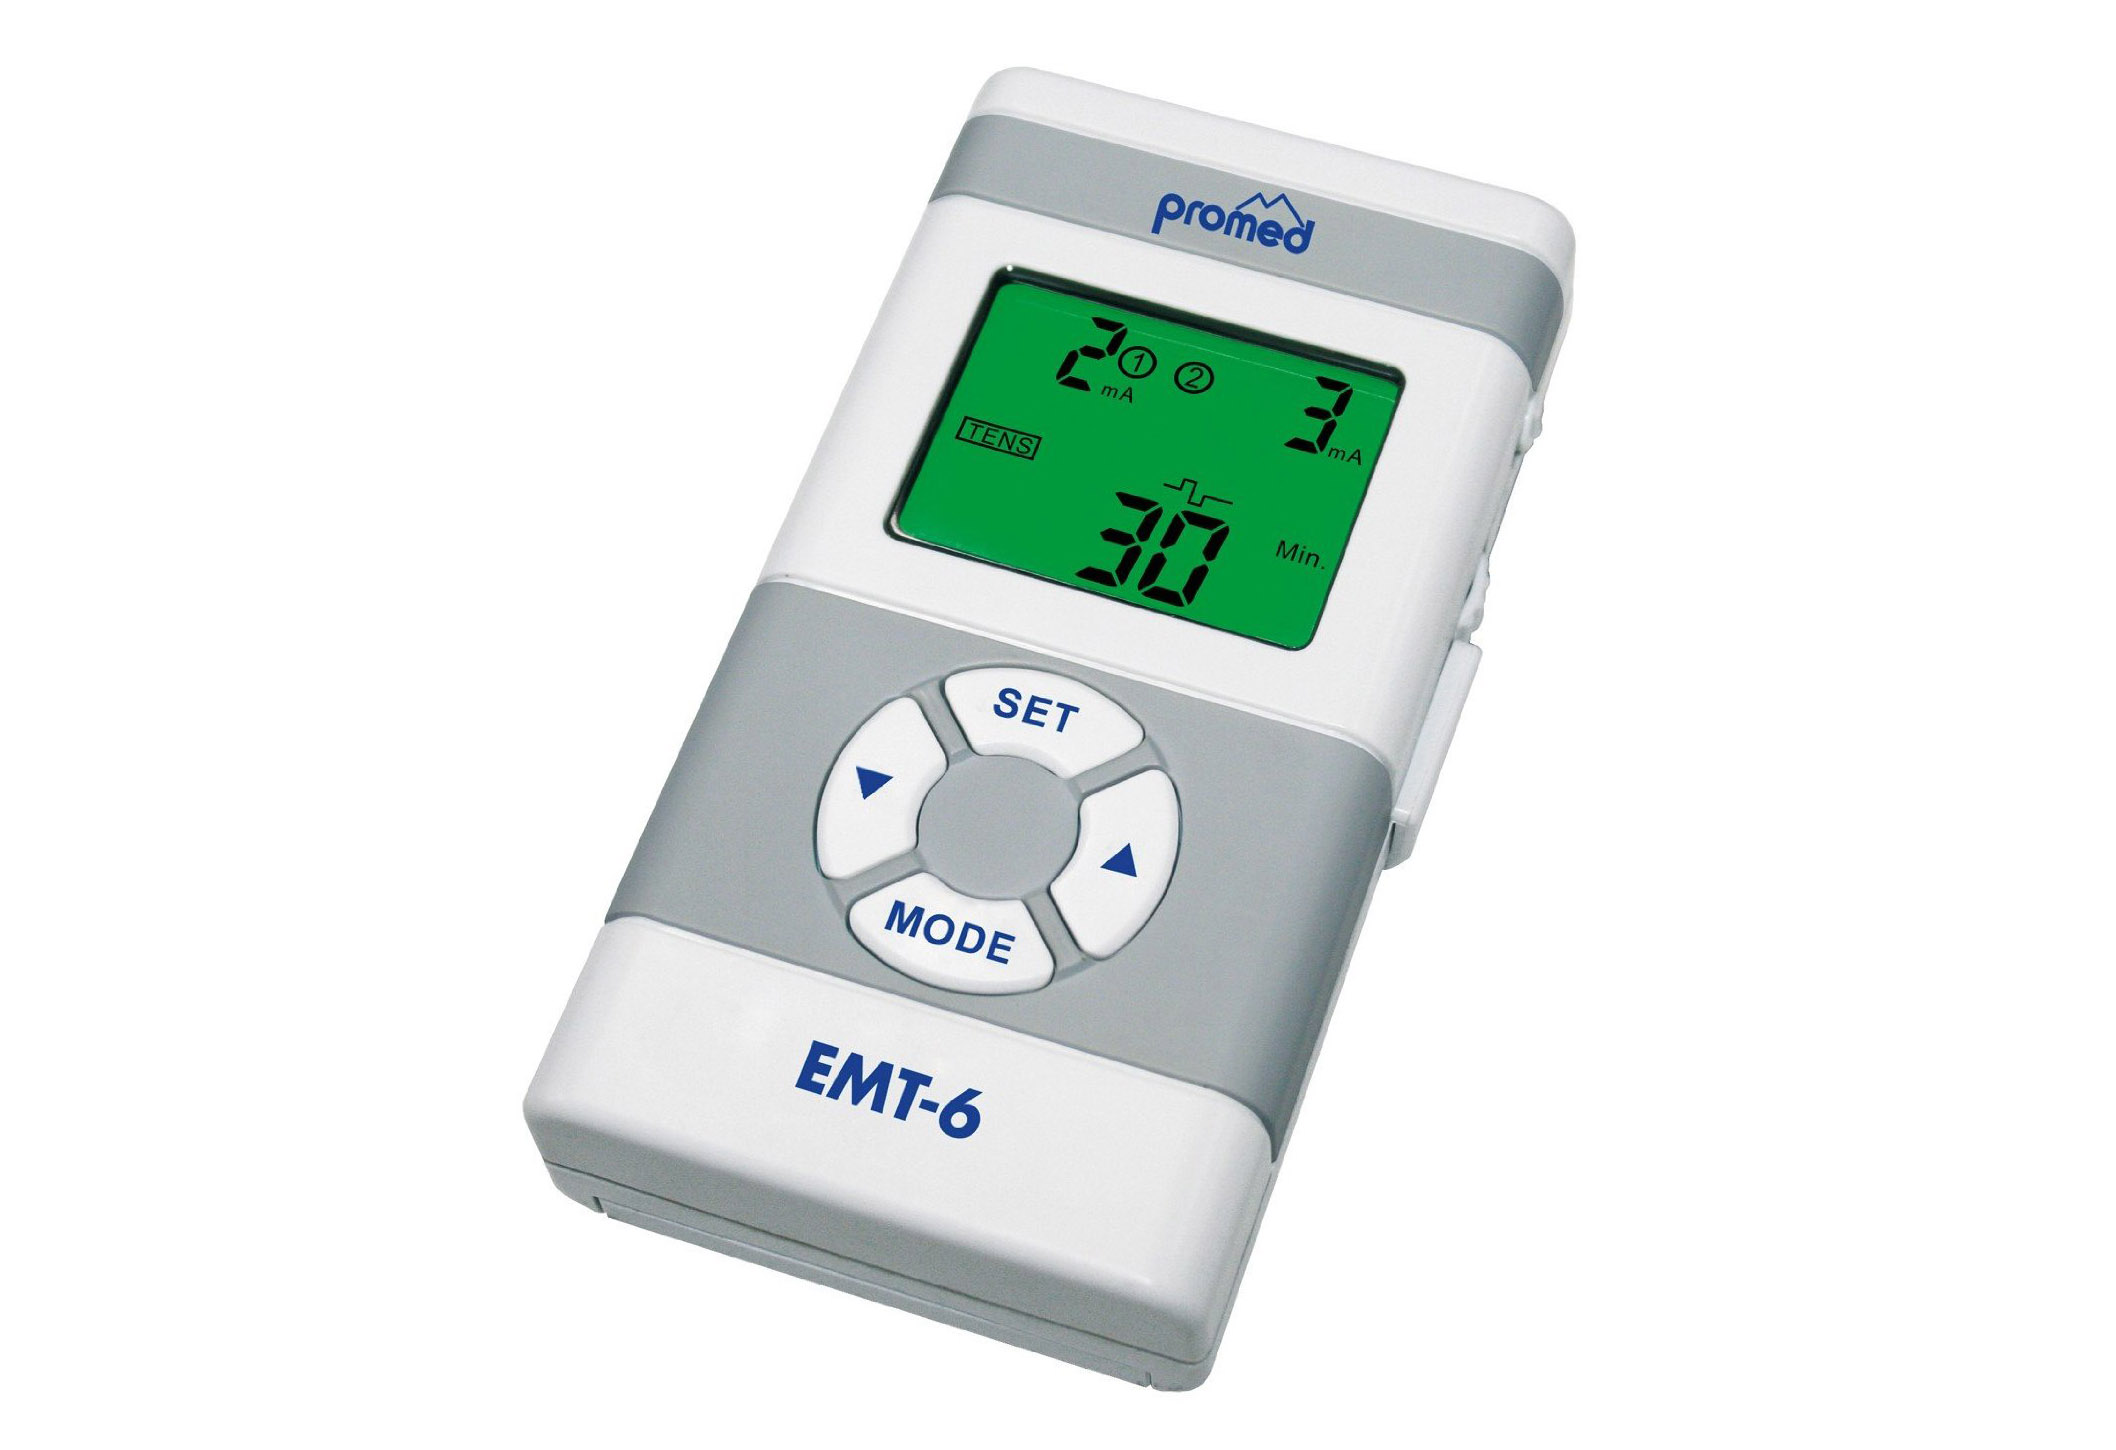 Promed EMT-6 - Combined device with TENS and EMS